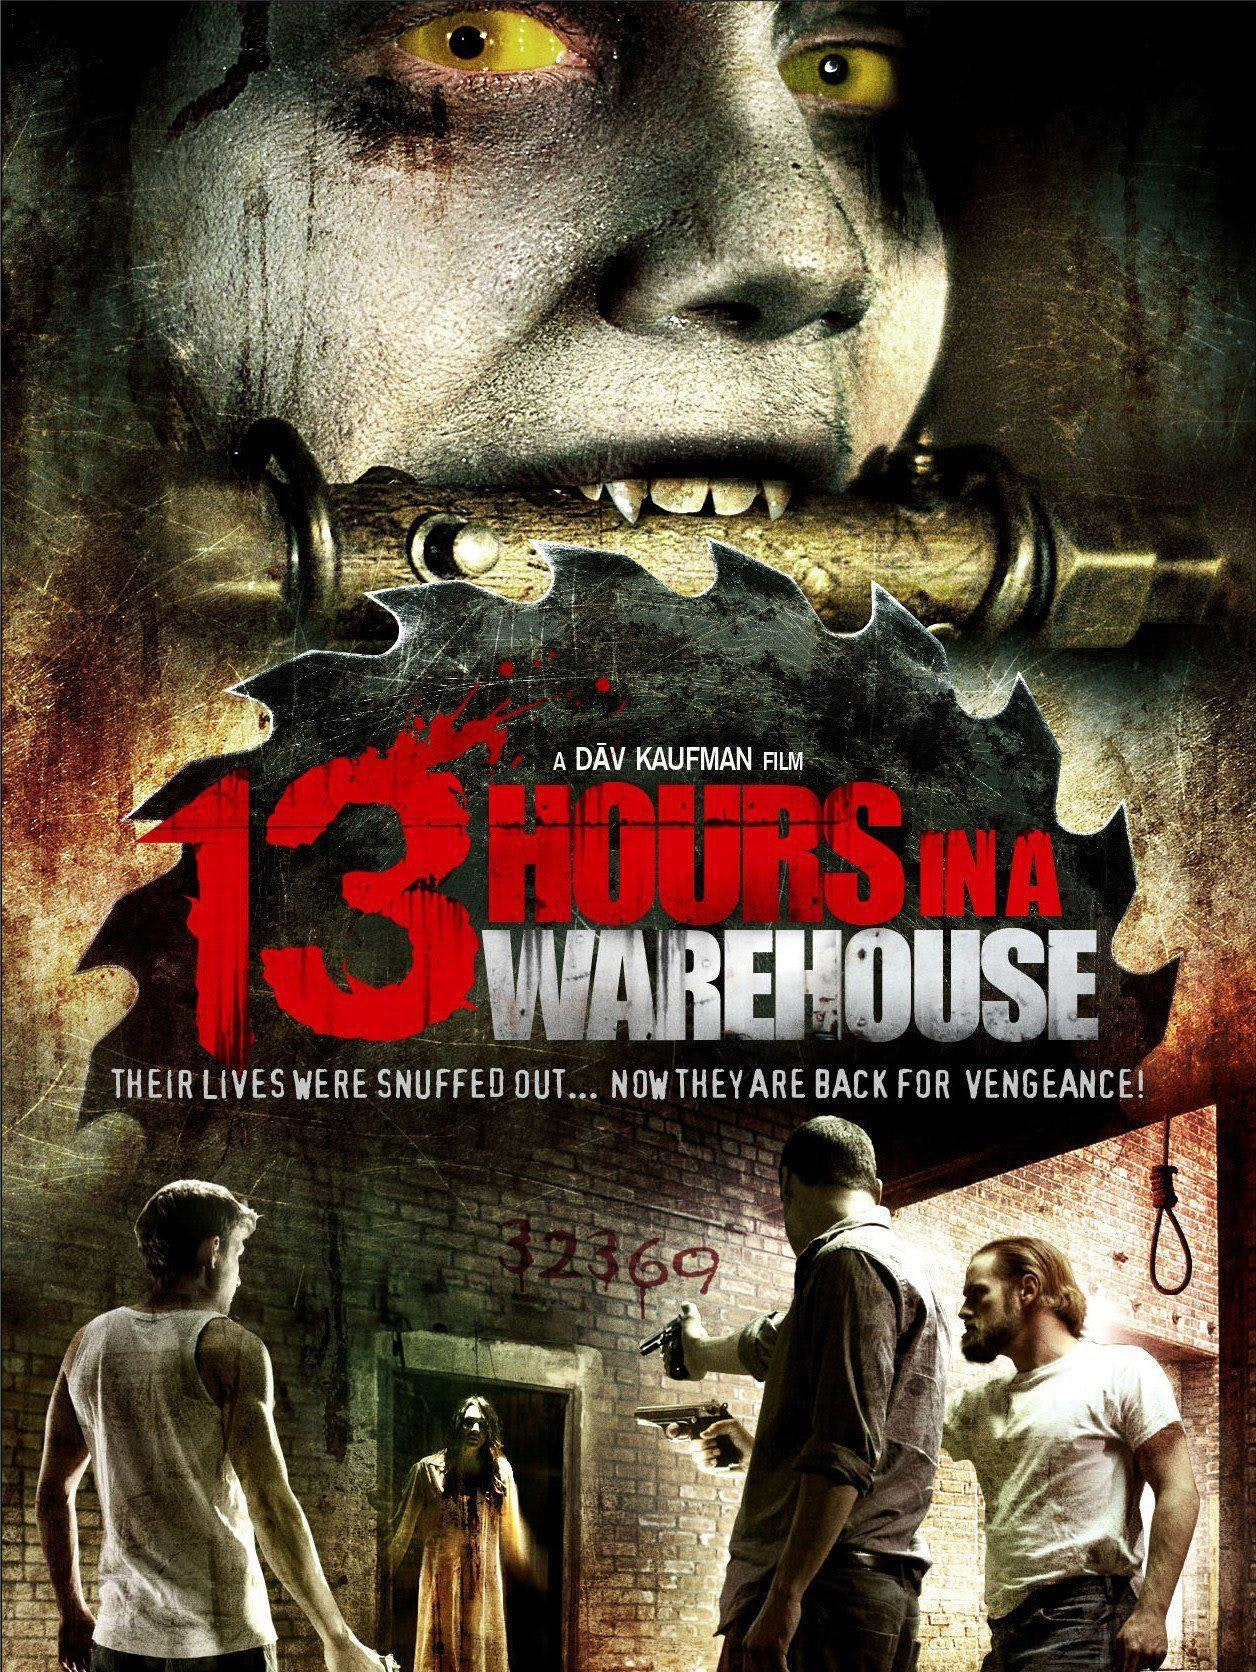 13 Hours in a Warehouse